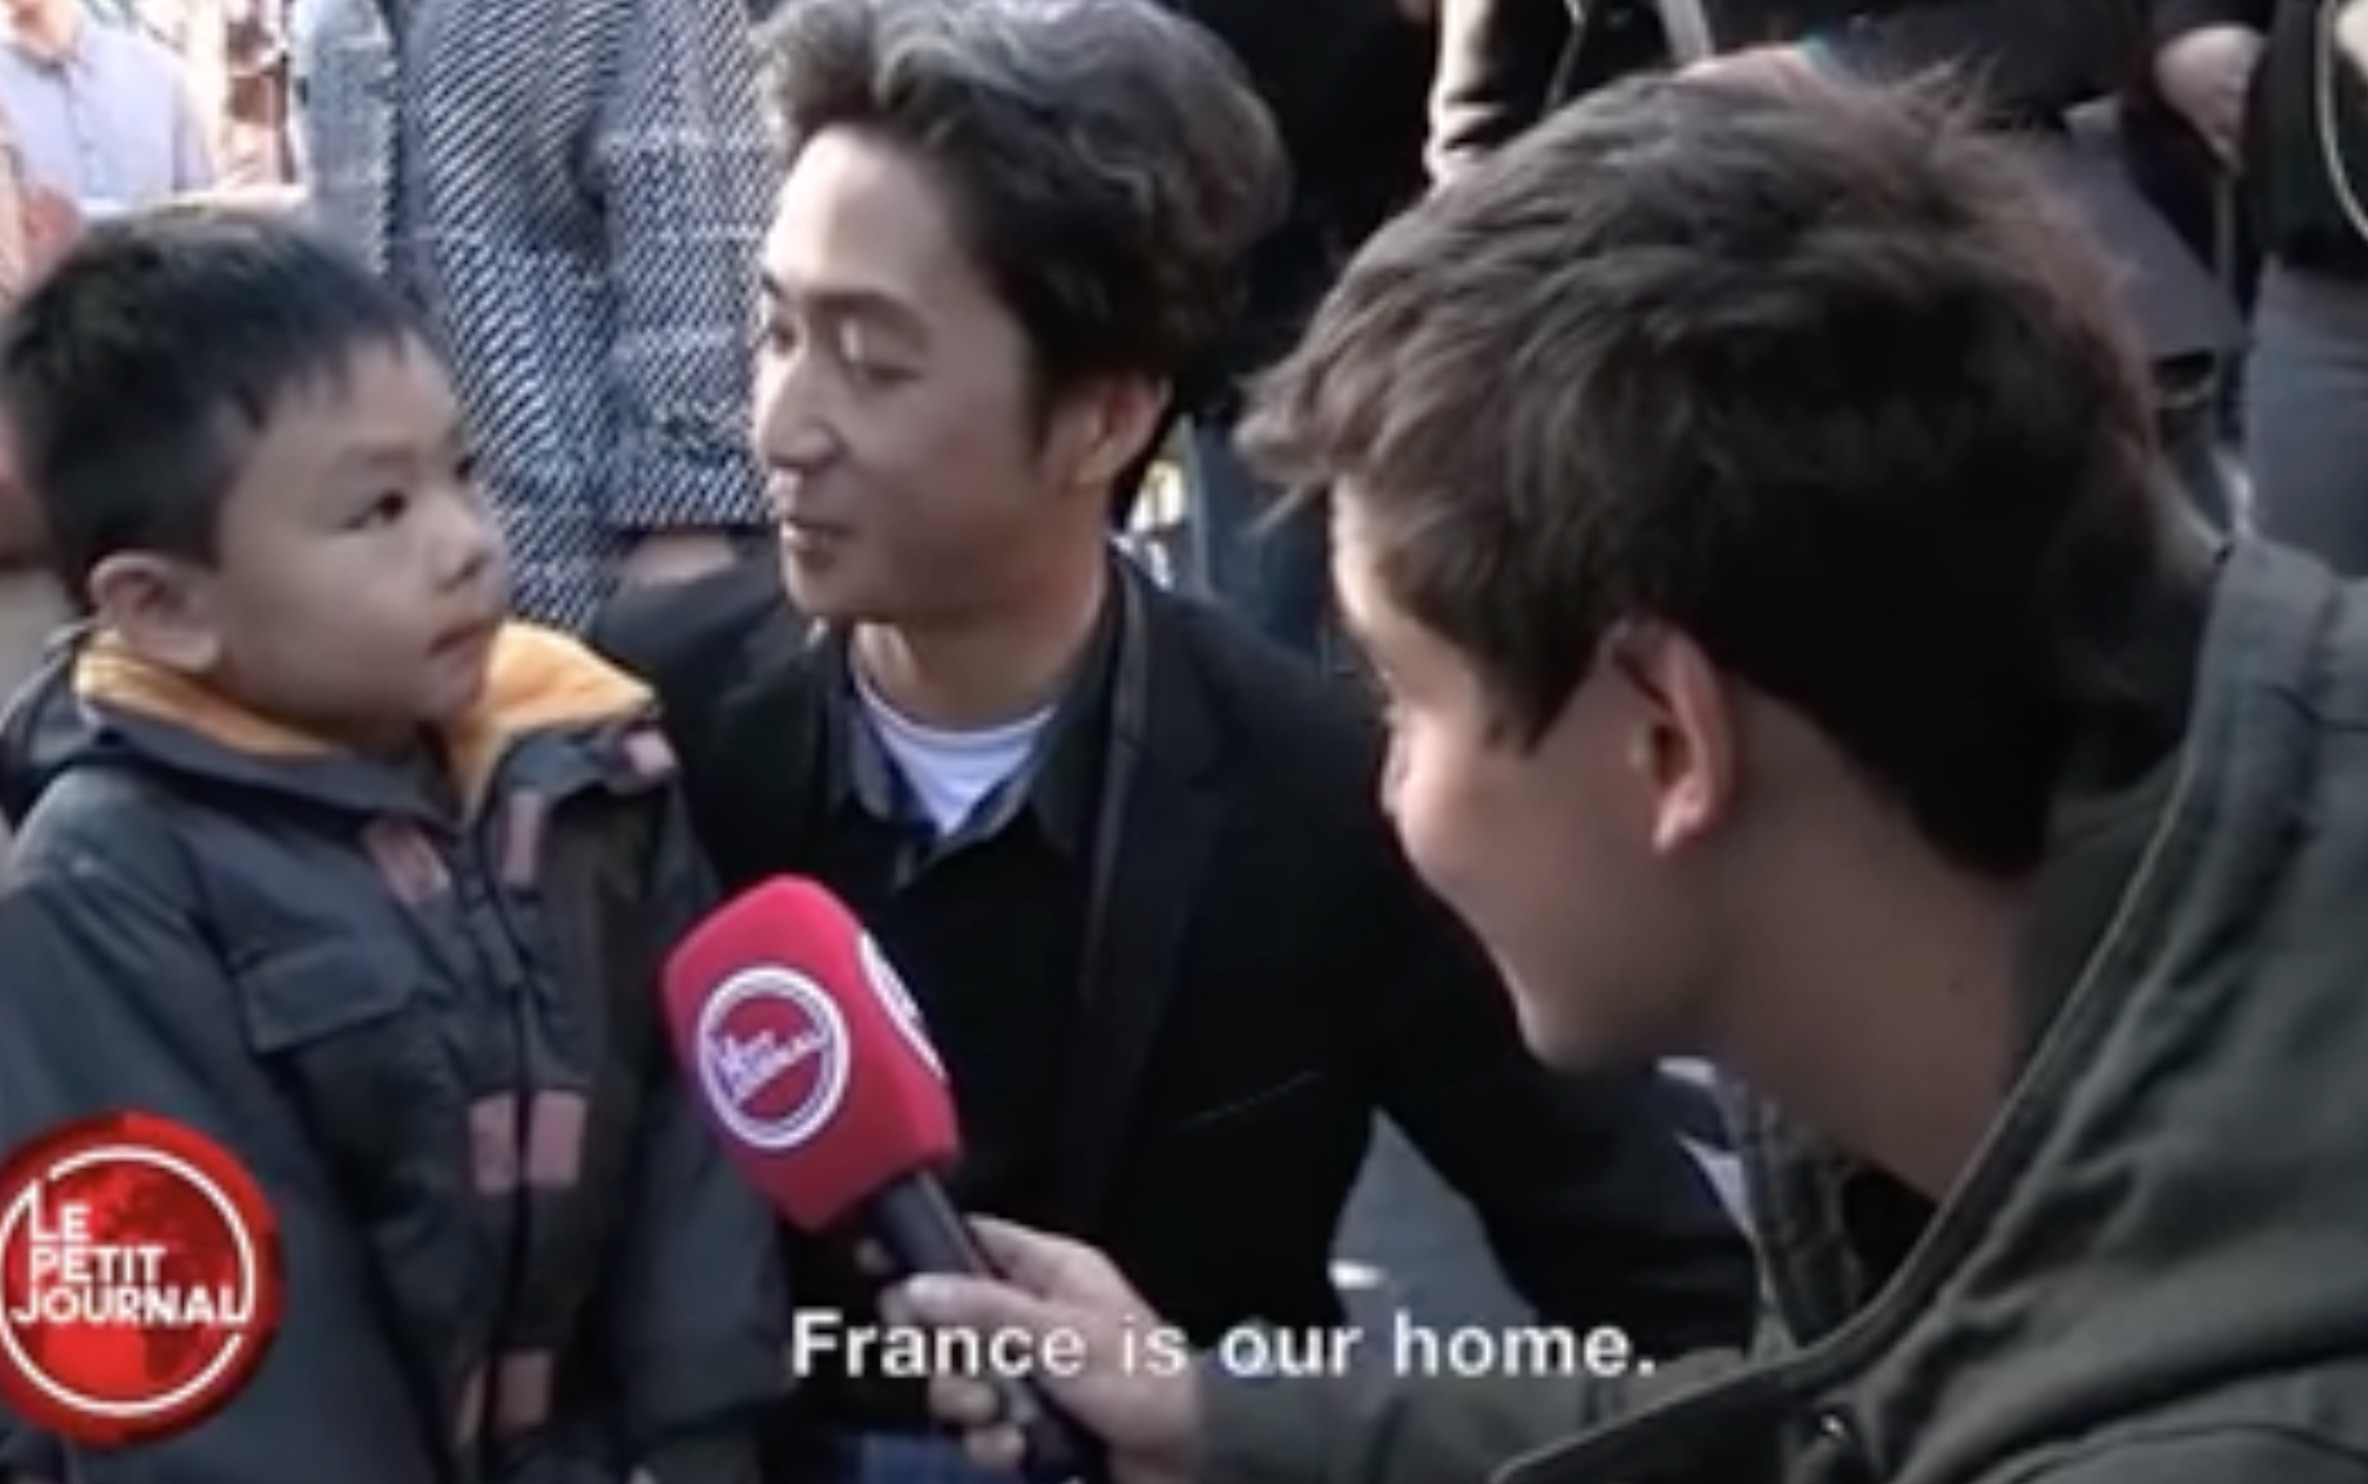 A father comforts his son about the Paris attacks and soothes us in the process